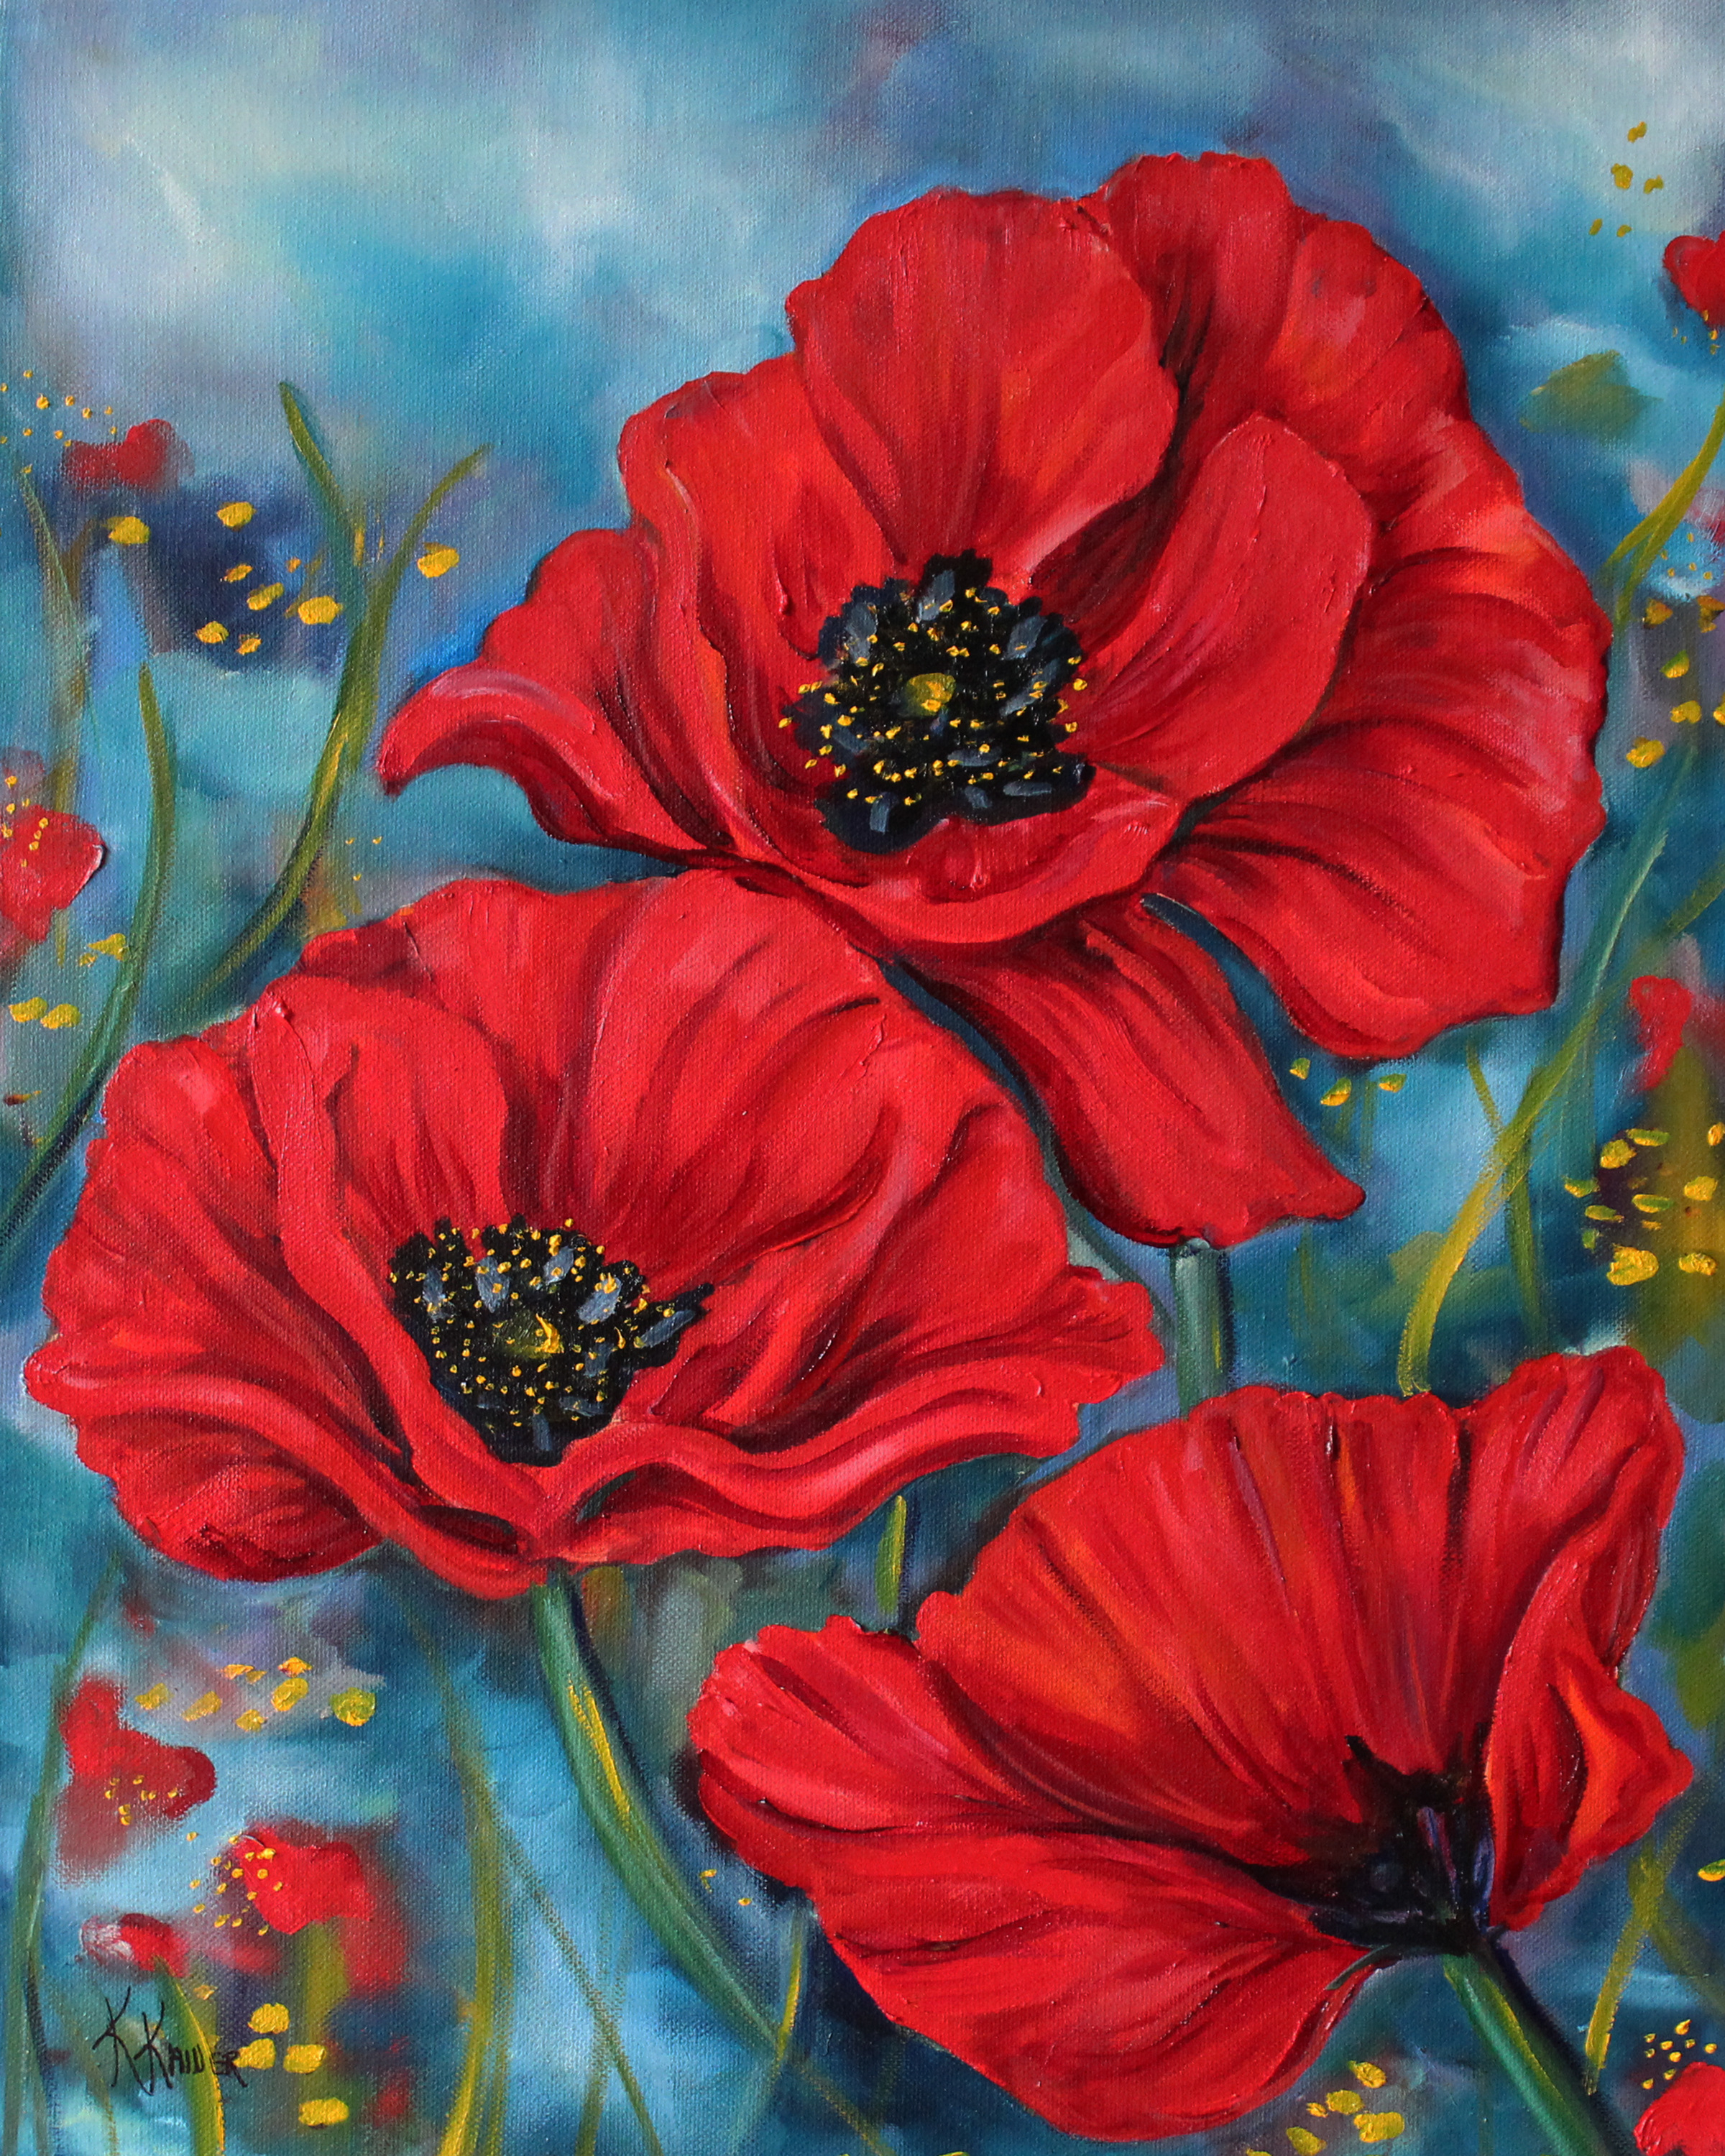 Red poppies 16x20 s6en9a